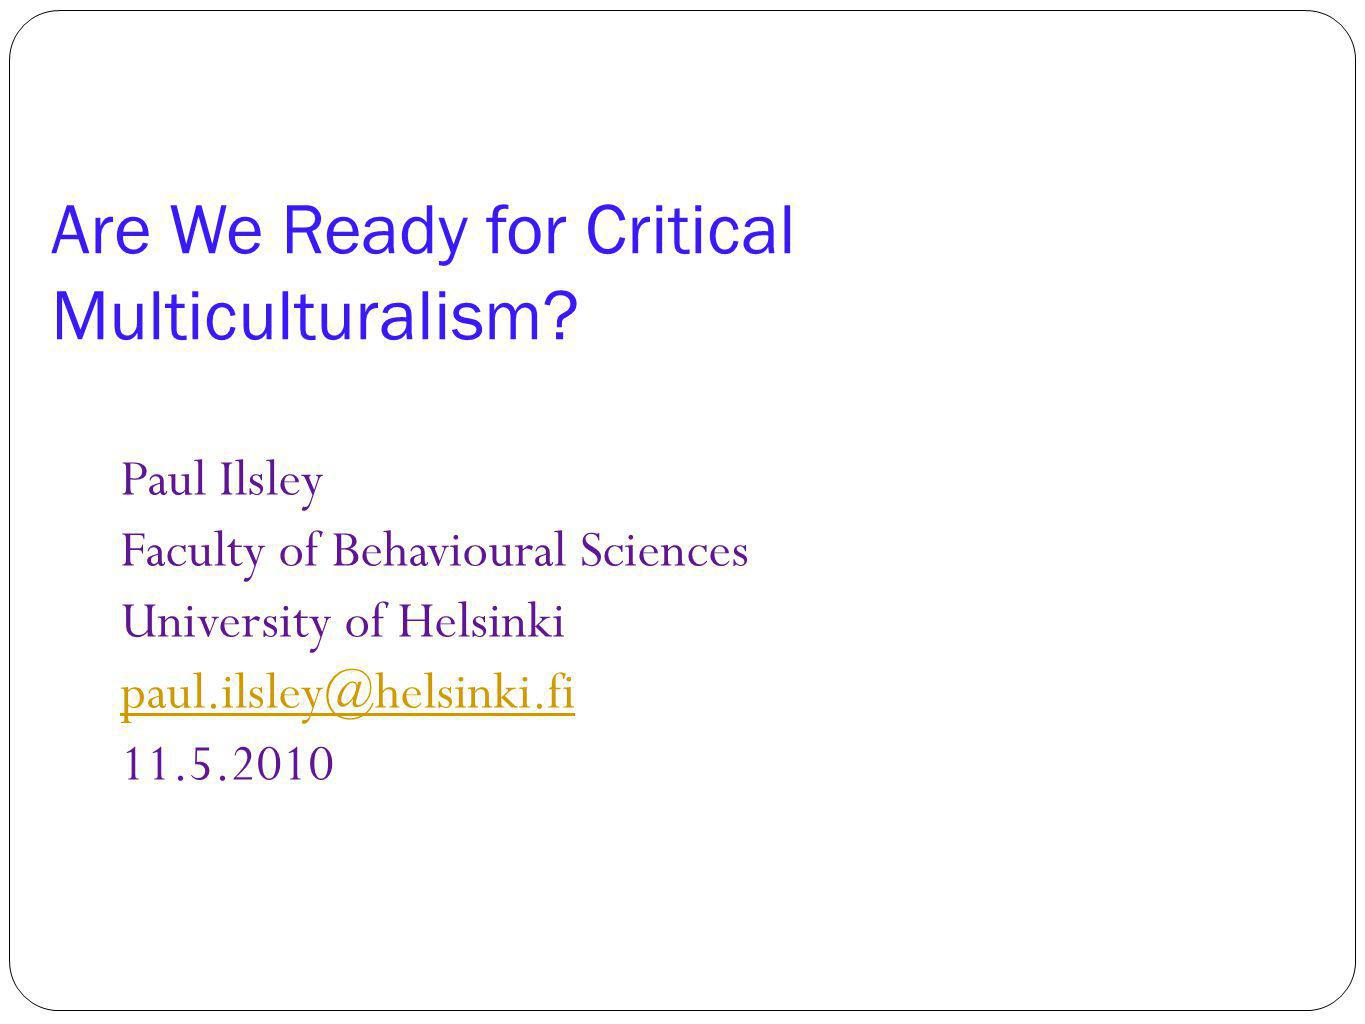 Are We Ready for Critical Multiculturalism? Paul Ilsley Faculty of Behavioural Sciences University of Helsinki paul.ilsley@helsinki.fi 11.5.2010